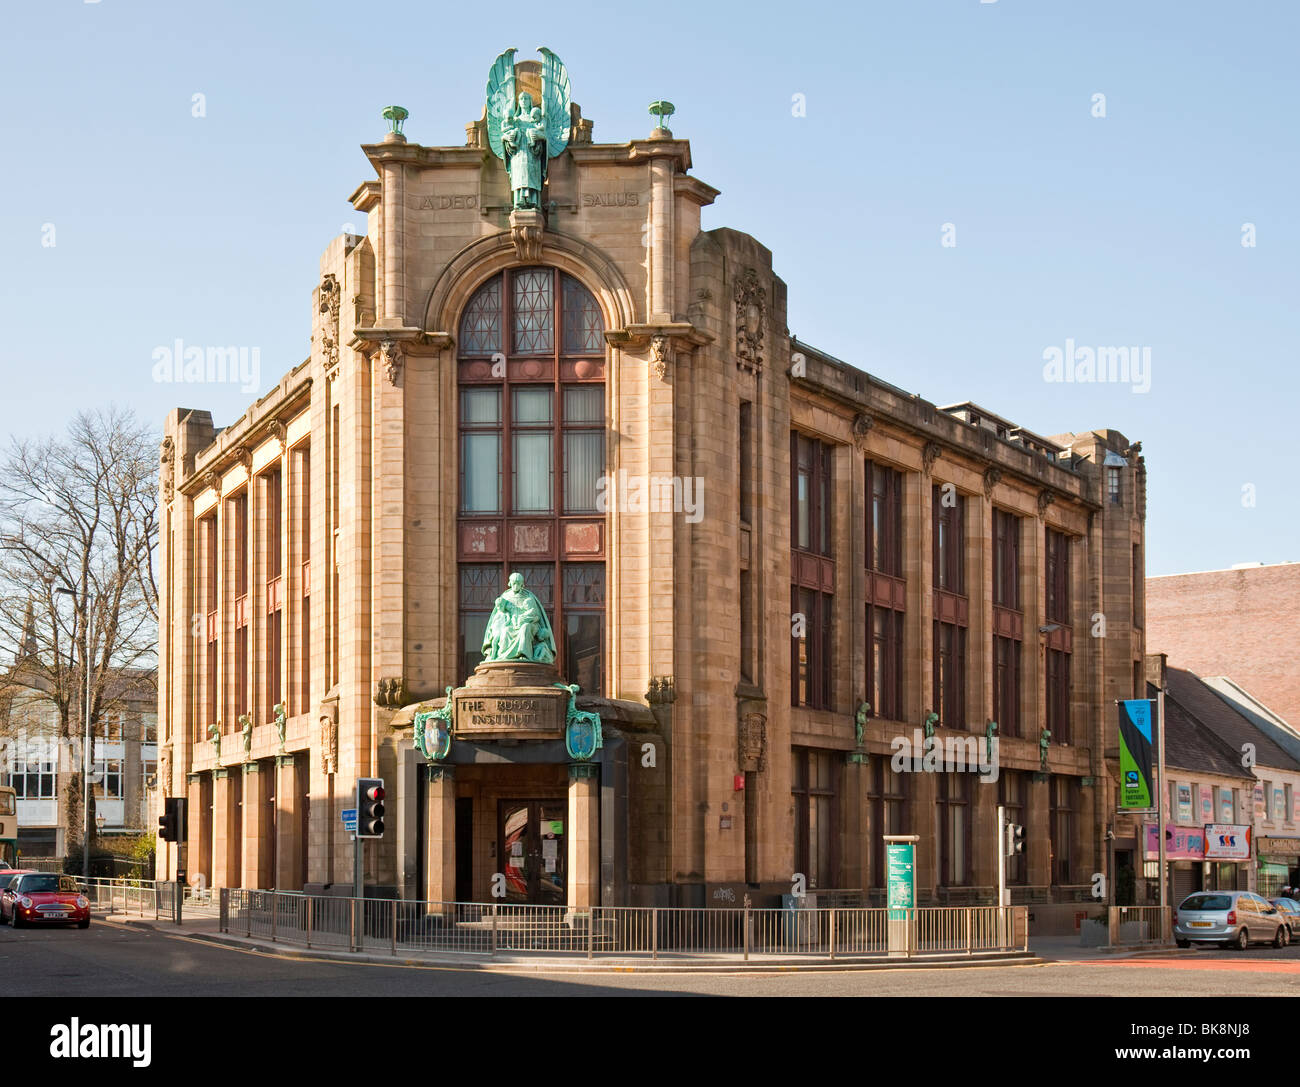 The Russell Institute which was opened in 1927 as a child welfare clinic and is still used as such. architect: J. - Stock Image